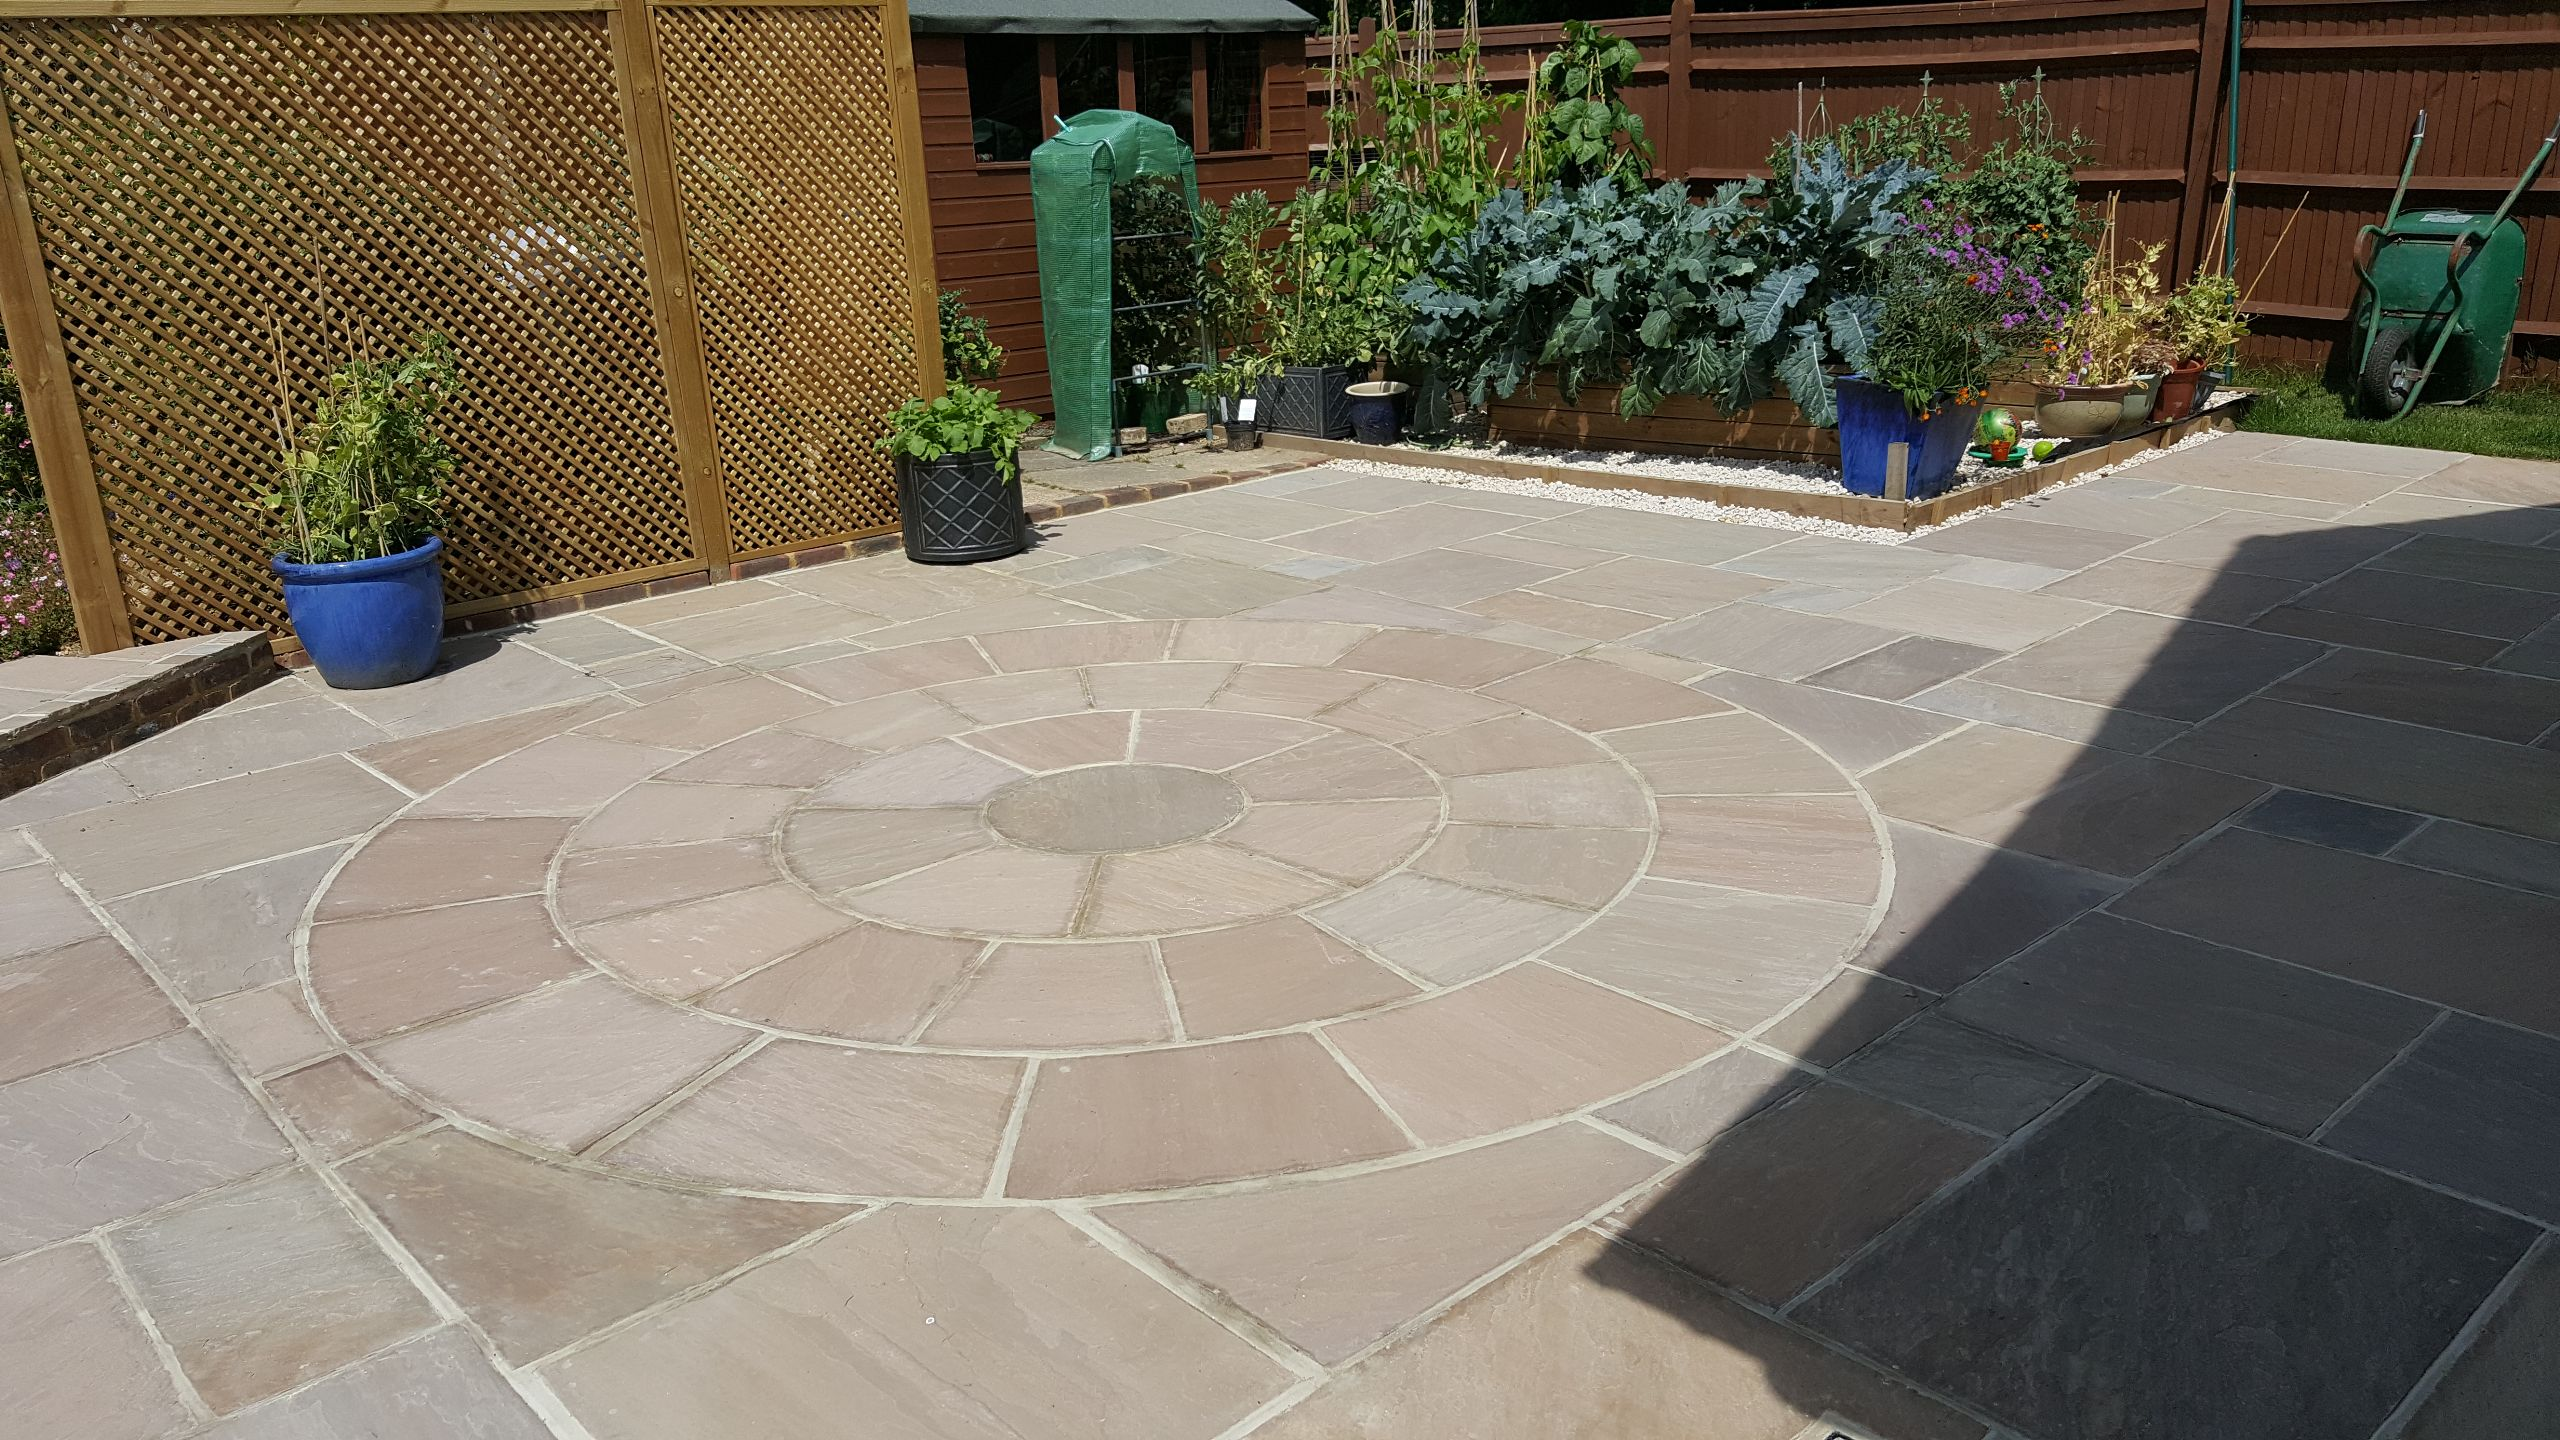 Patio in Horsham with circle wheel effect